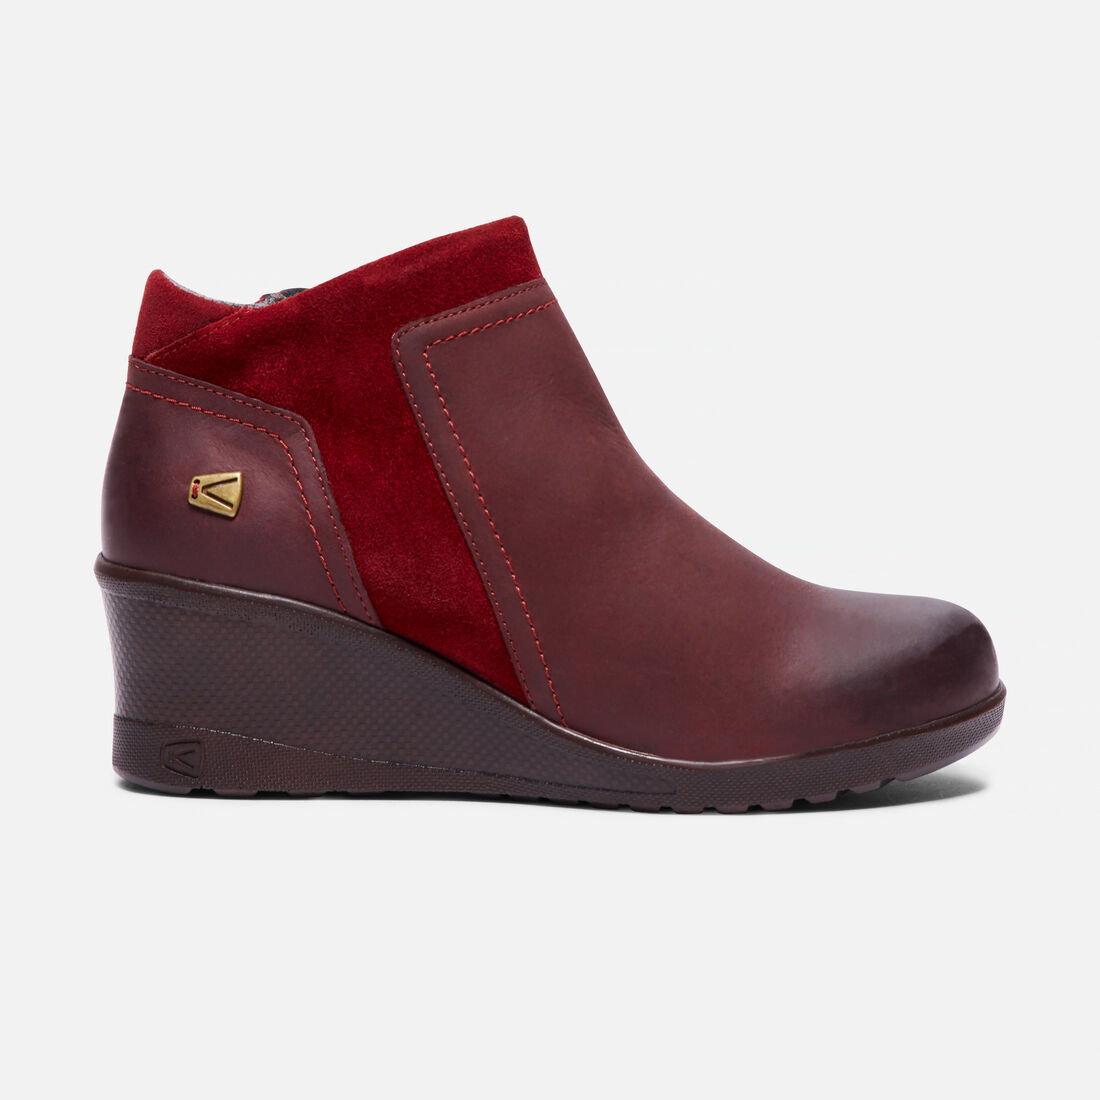 65bfe8a48970 Women s KEEN Wedge Zip in Red Dahlia - large view.